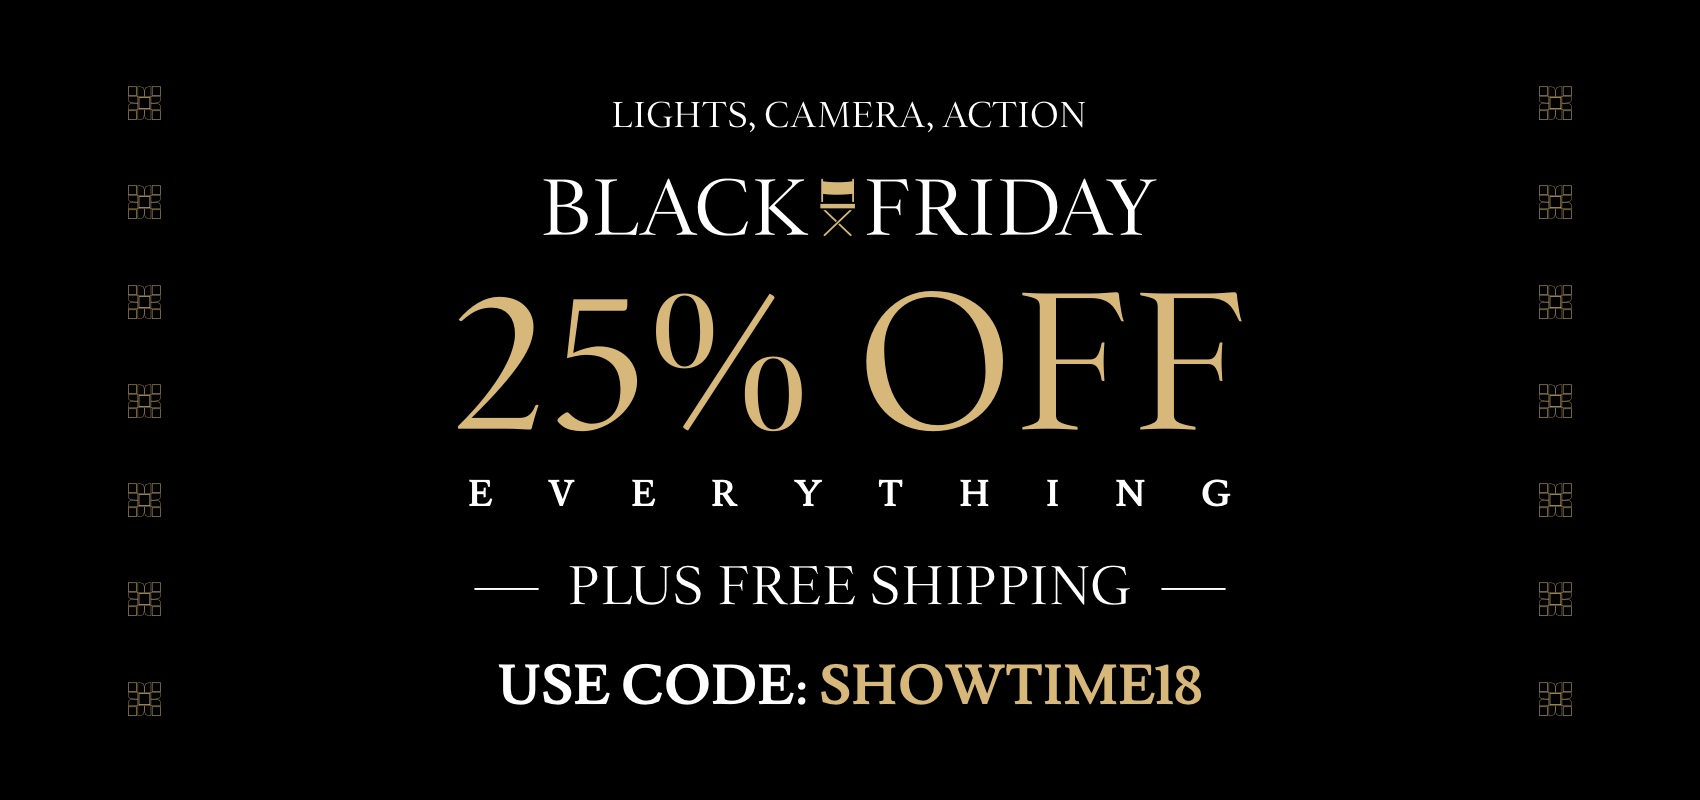 Charles Tyrwhitt Black Friday 25% and free shipping off with code SHOWTIME18